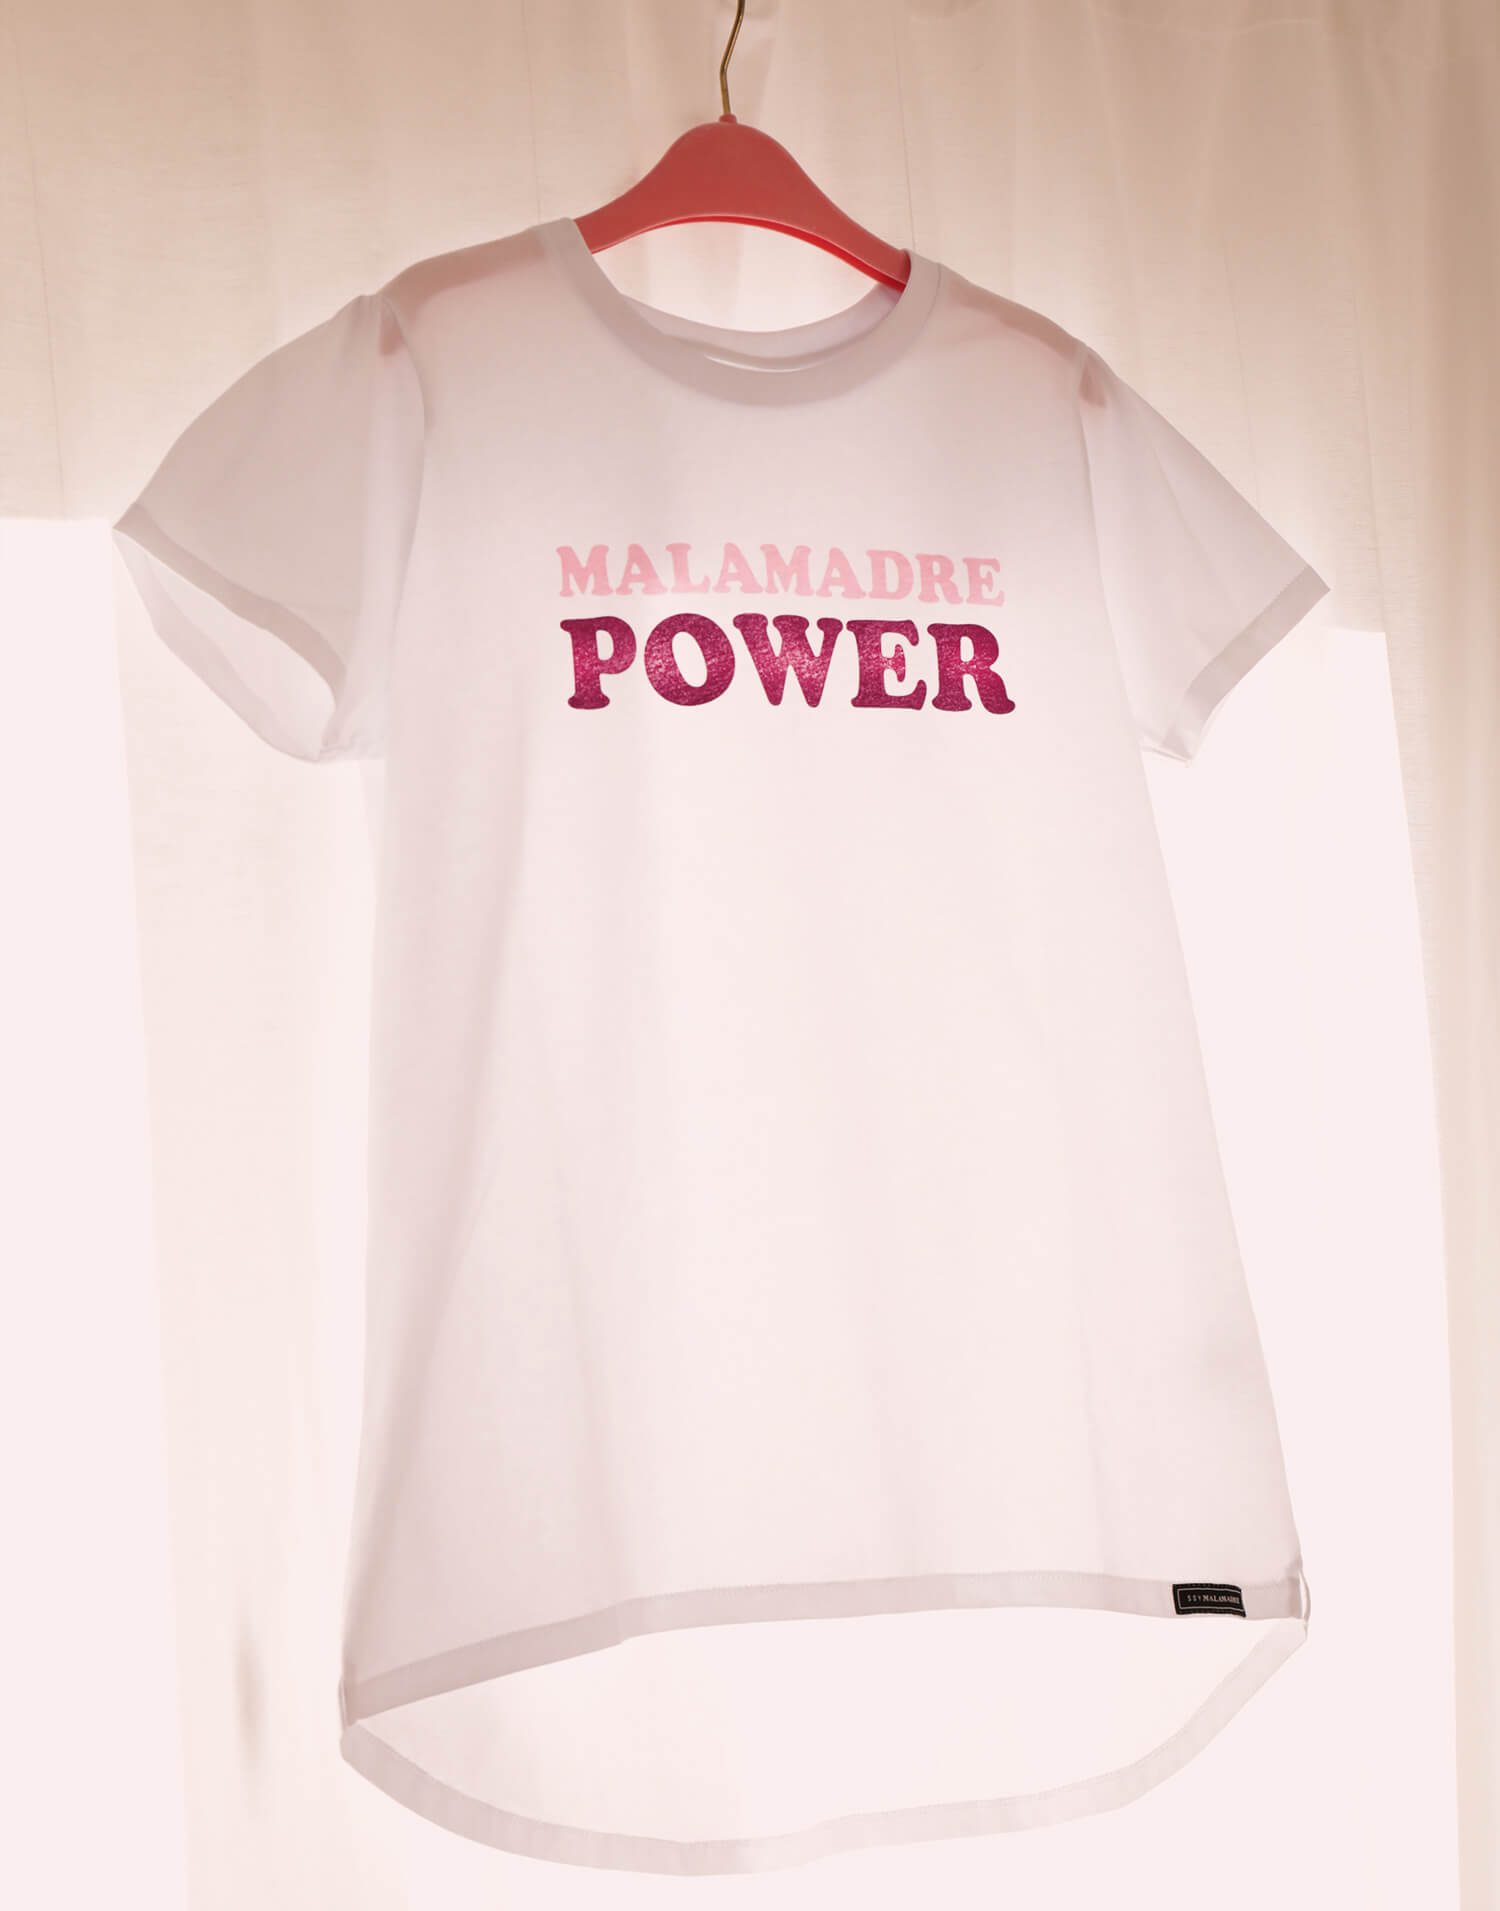 Camiseta blanca solidaria Malamadre Power